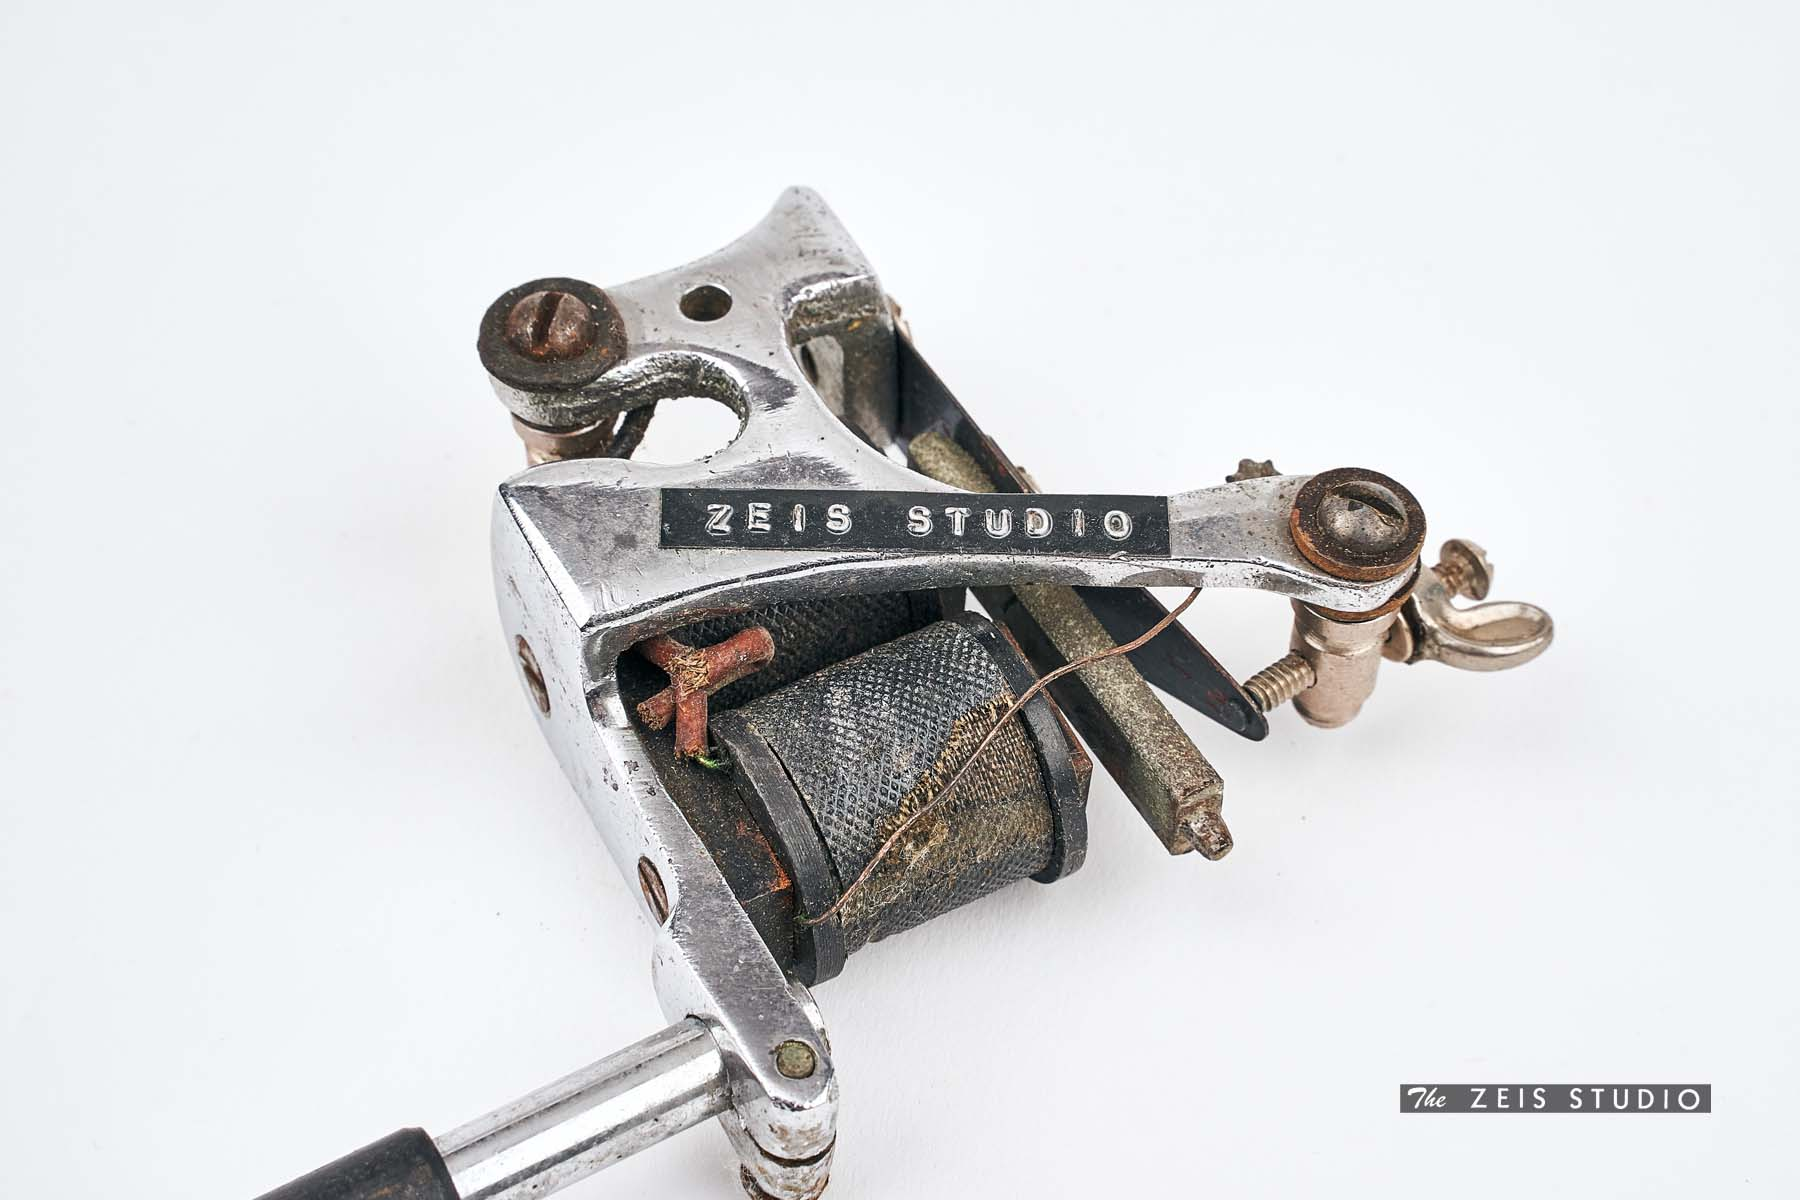 Closeup of Charlie Geizer Tattoo Machine with The Zeis Studio logo on it. From Milton Zeis's personal collection.